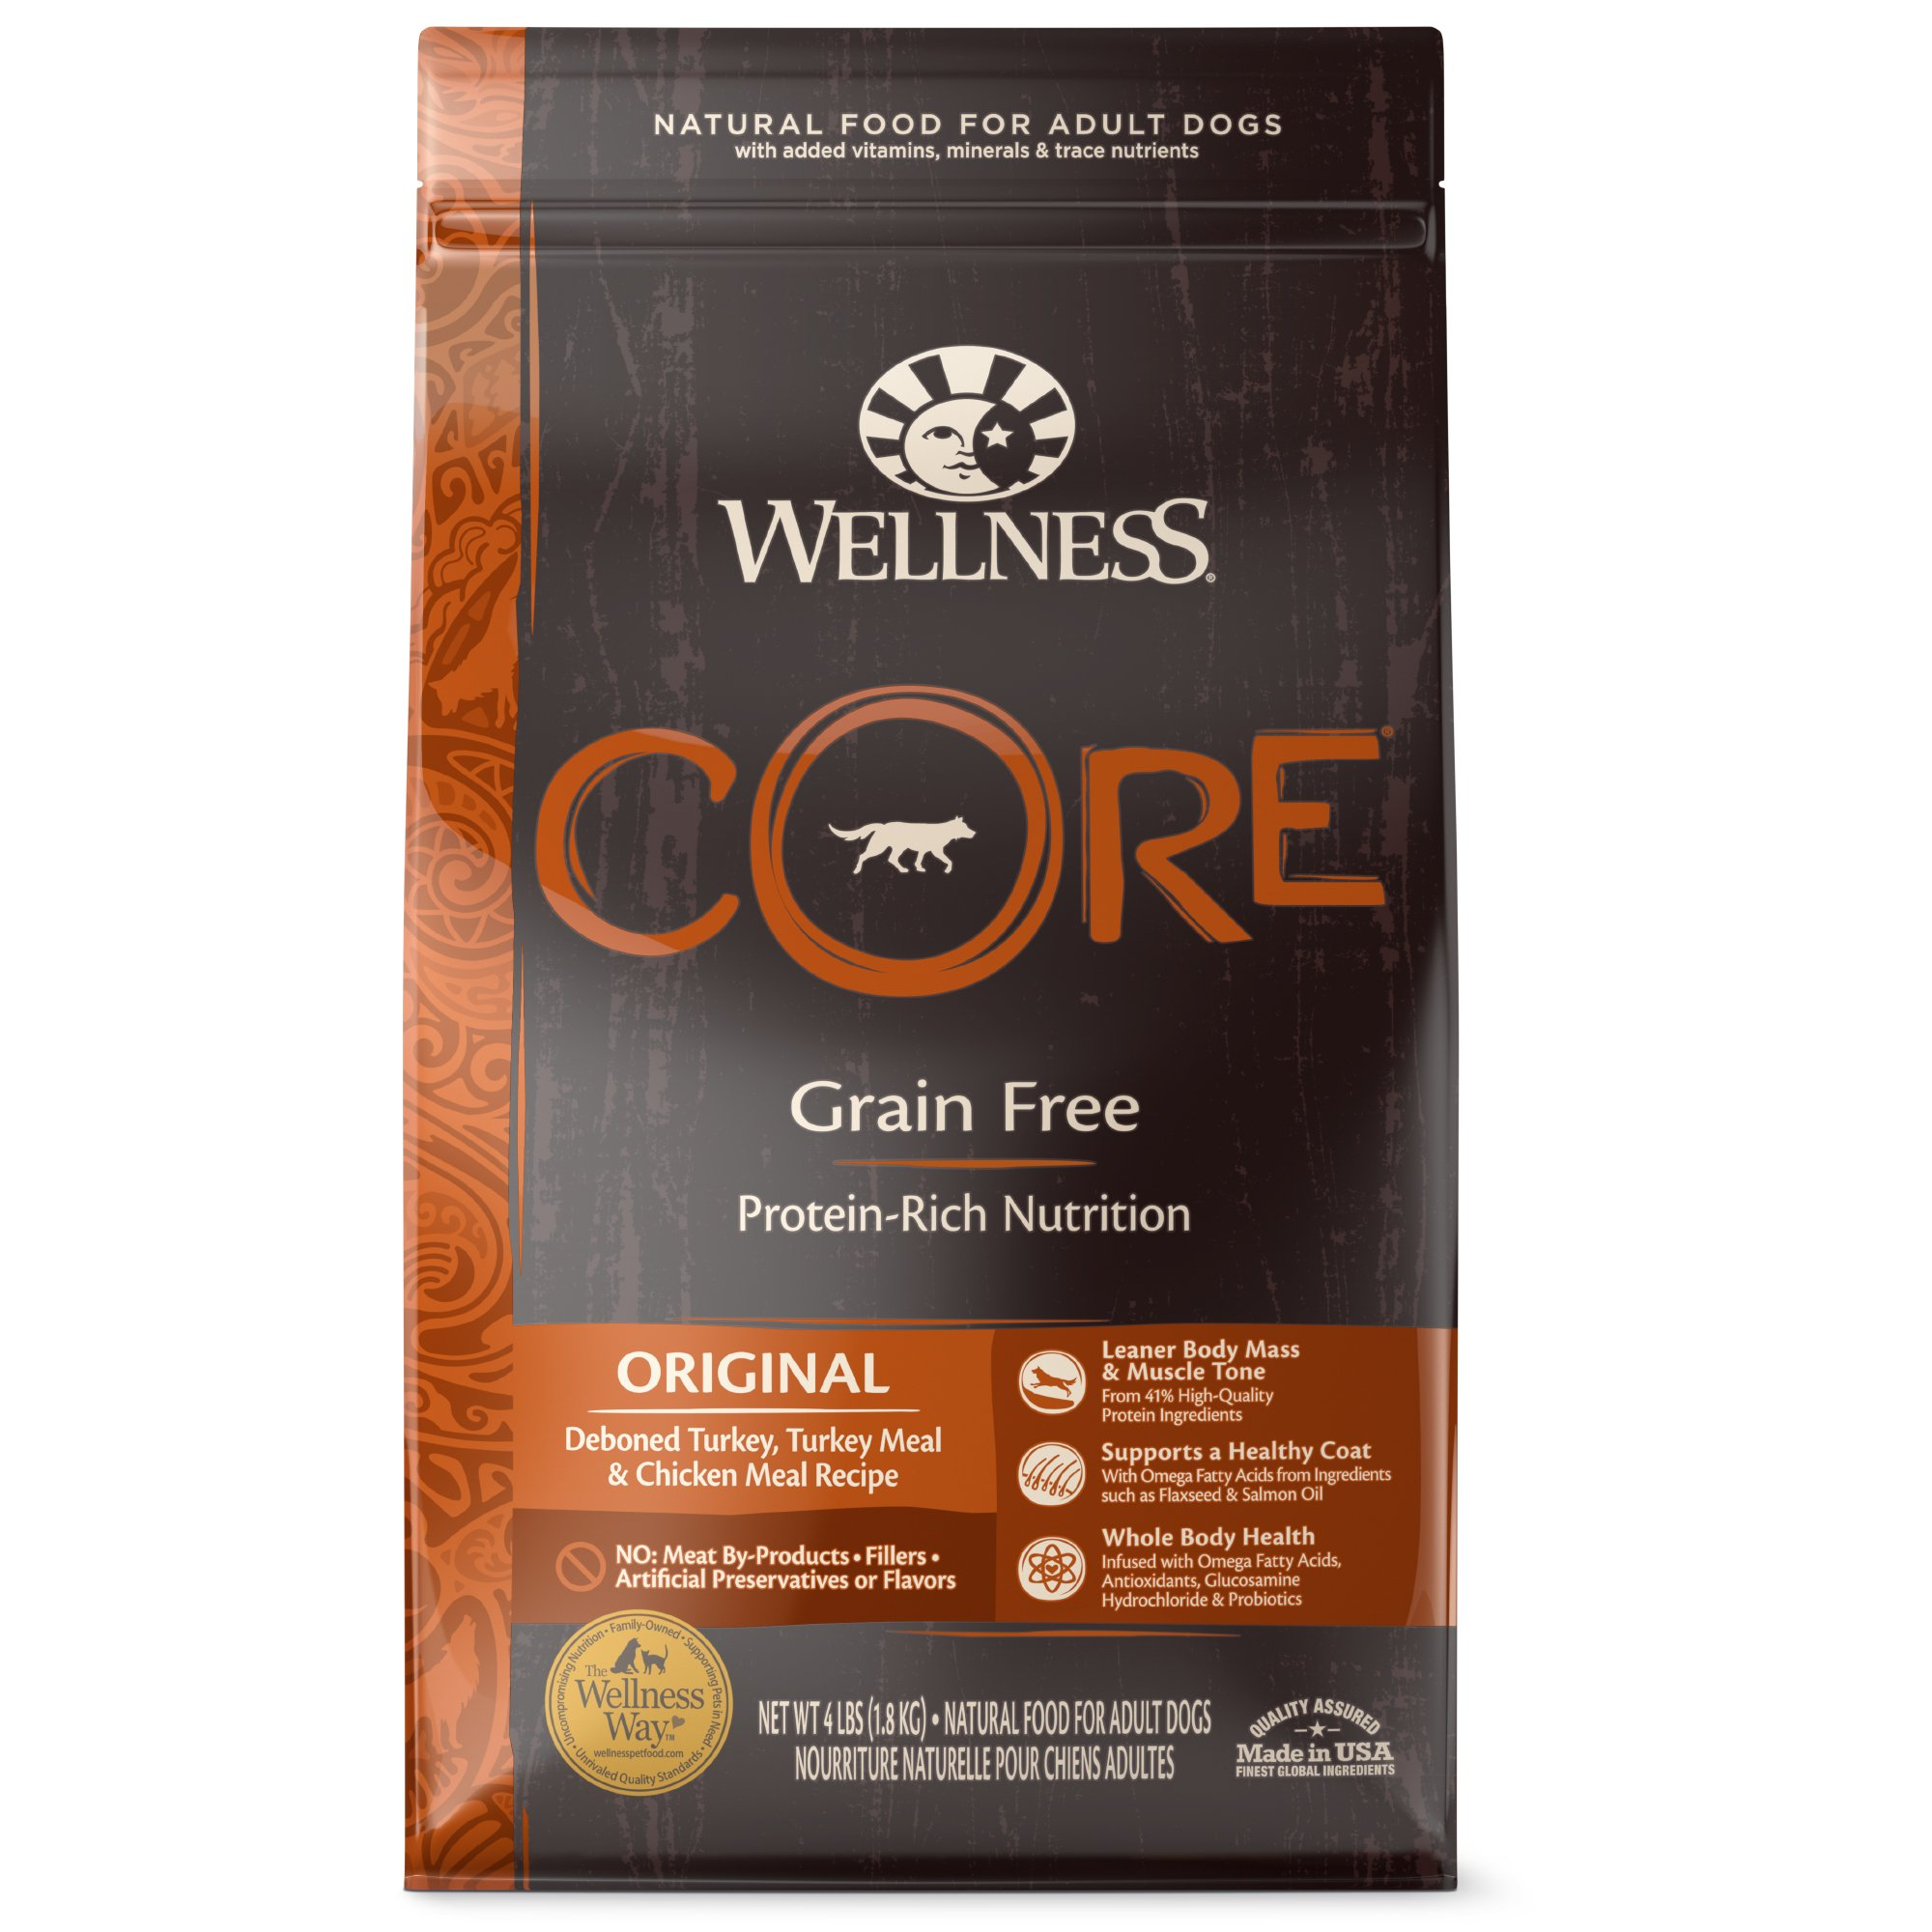 Wellness CORE Natural Grain Free Dry Dog Food Standard Packaging 4-Pound Bag